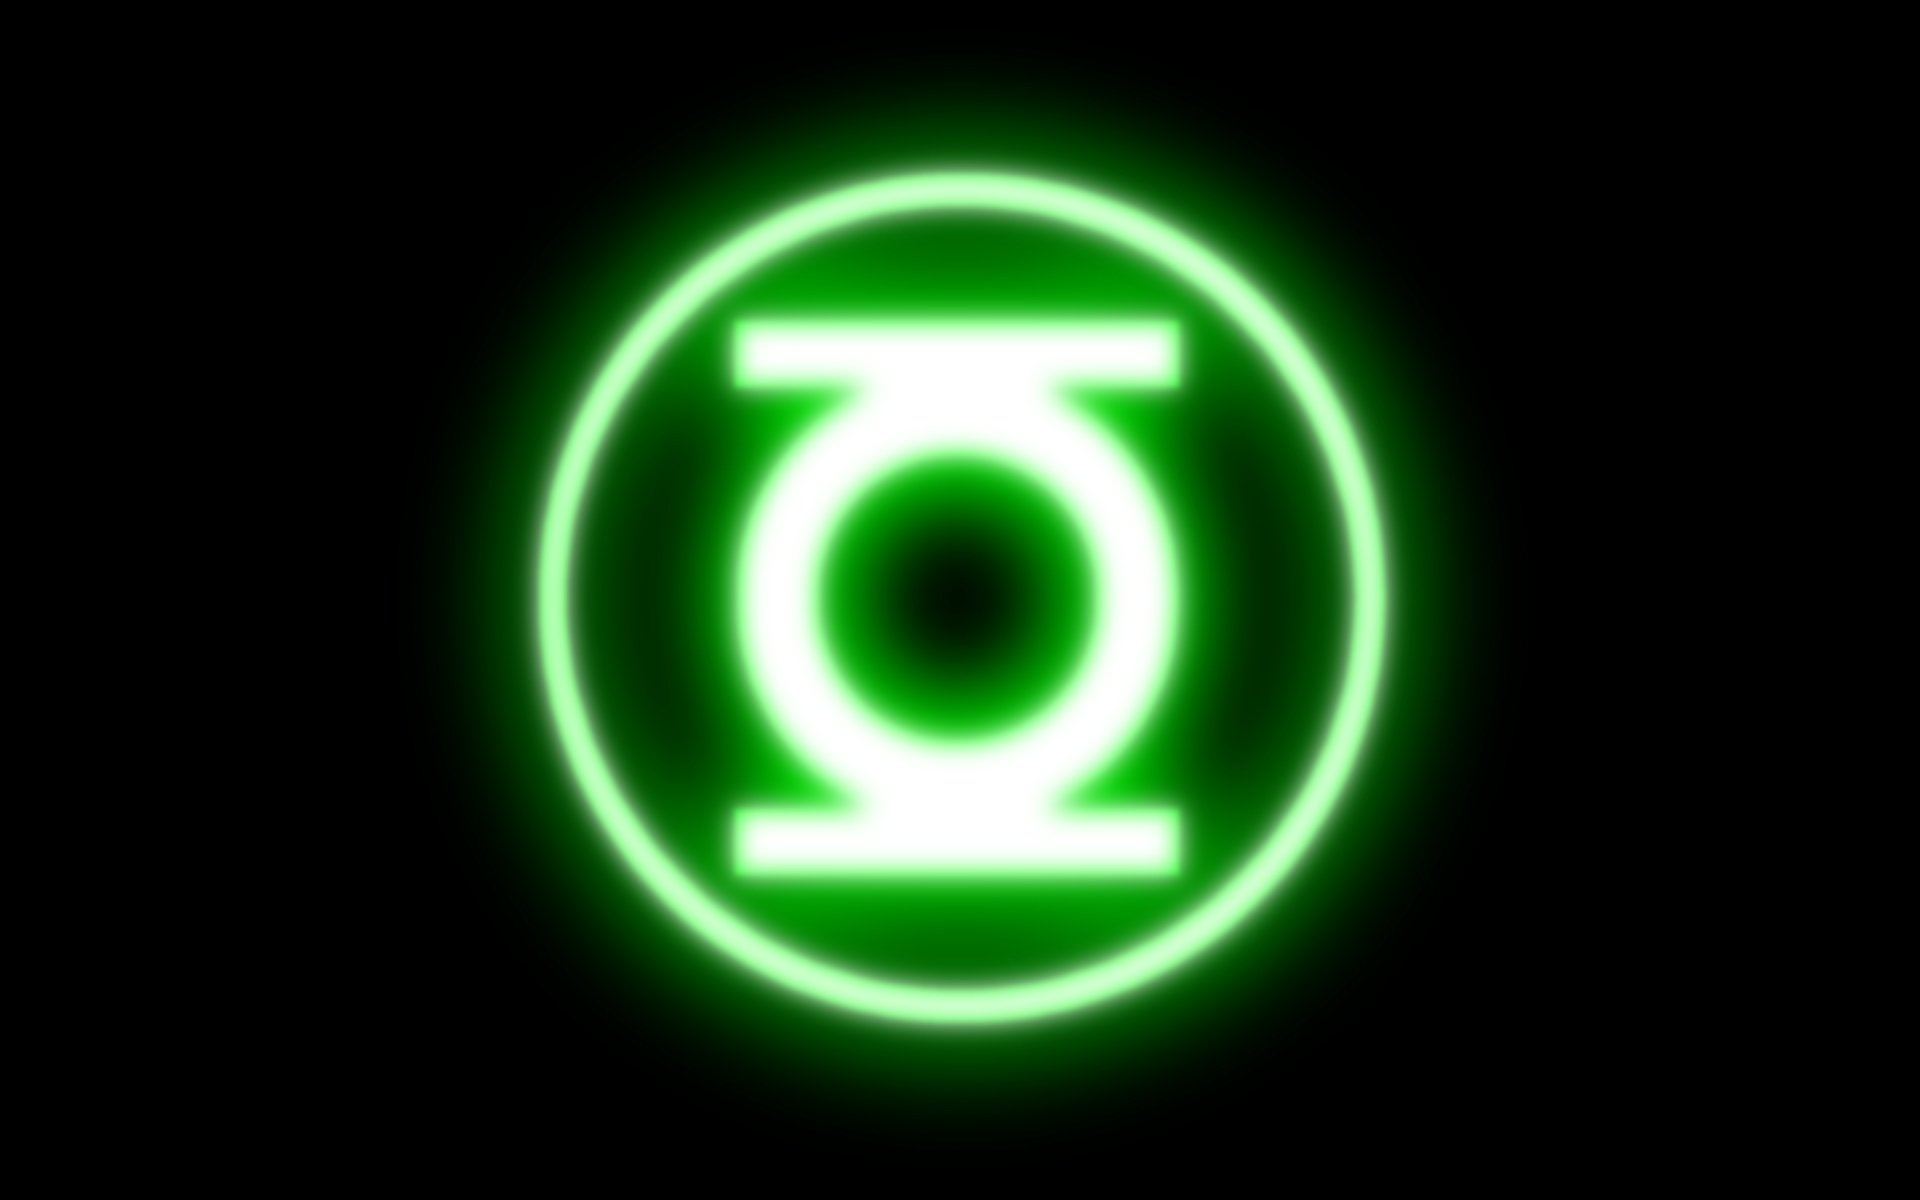 267 green lantern hd wallpapers | background images - wallpaper abyss